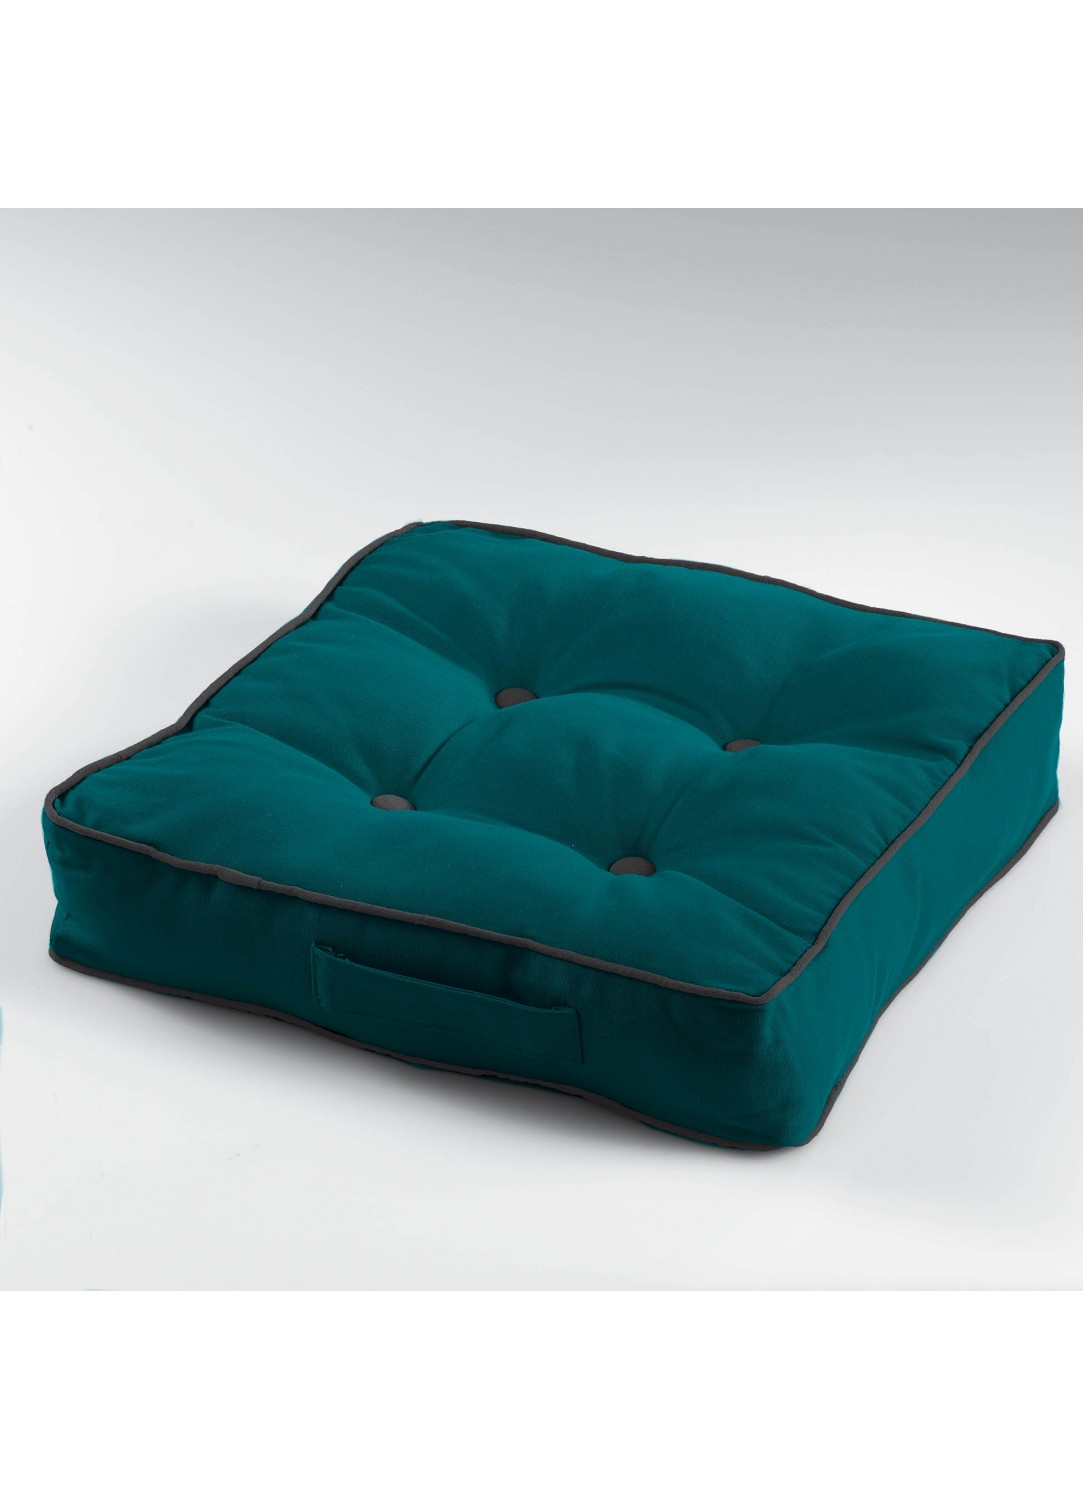 coussin de sol uni bleu homemaison vente en ligne coussins de sol. Black Bedroom Furniture Sets. Home Design Ideas